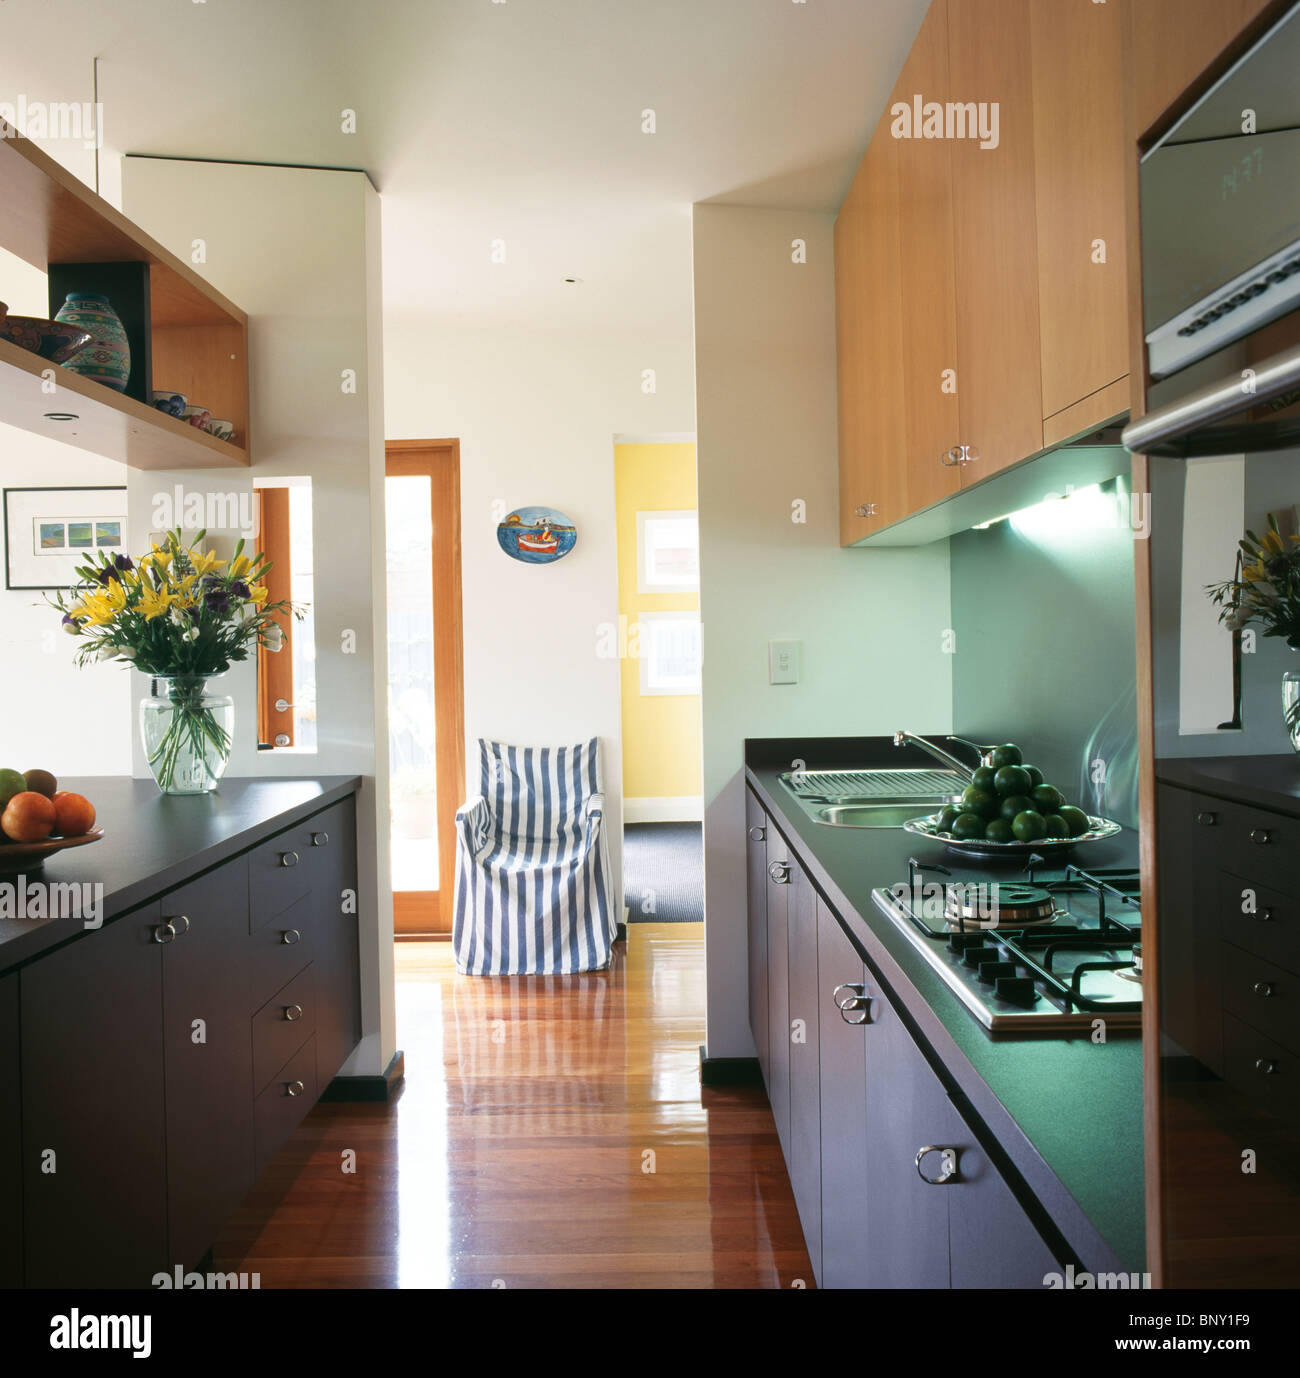 lighting for galley kitchen. Lighting Above Hob In Fitted Unit Open-plan Galley Kitchen With Wooden Flooring And View Of Chair Striped Loose-cover For